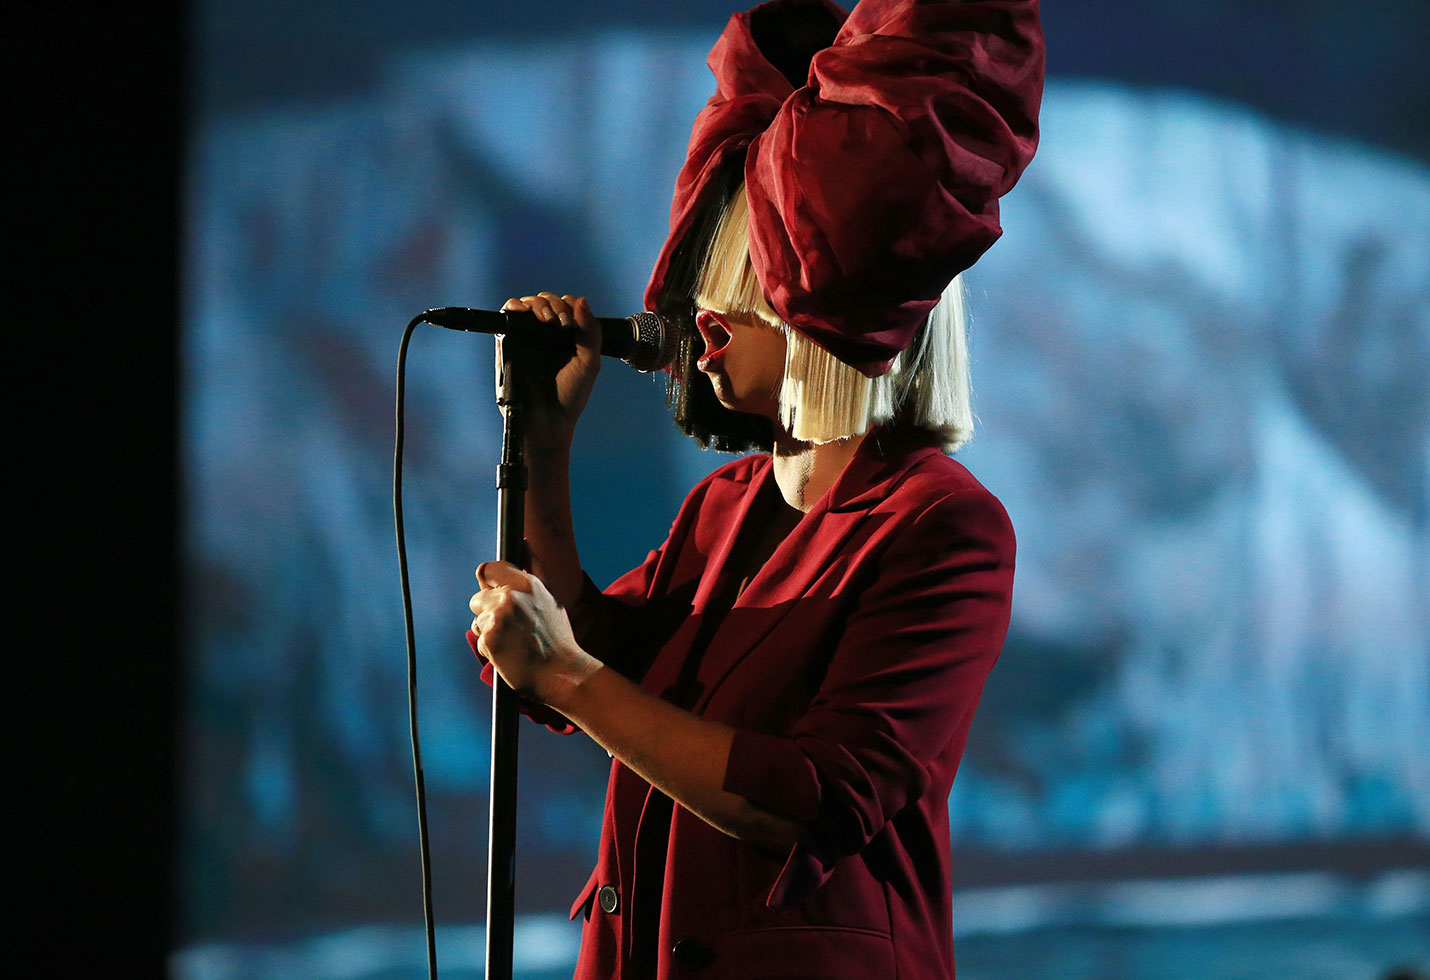 Sia Post Nude Photo Twitter Amid Paparazzi Threat Sell feature